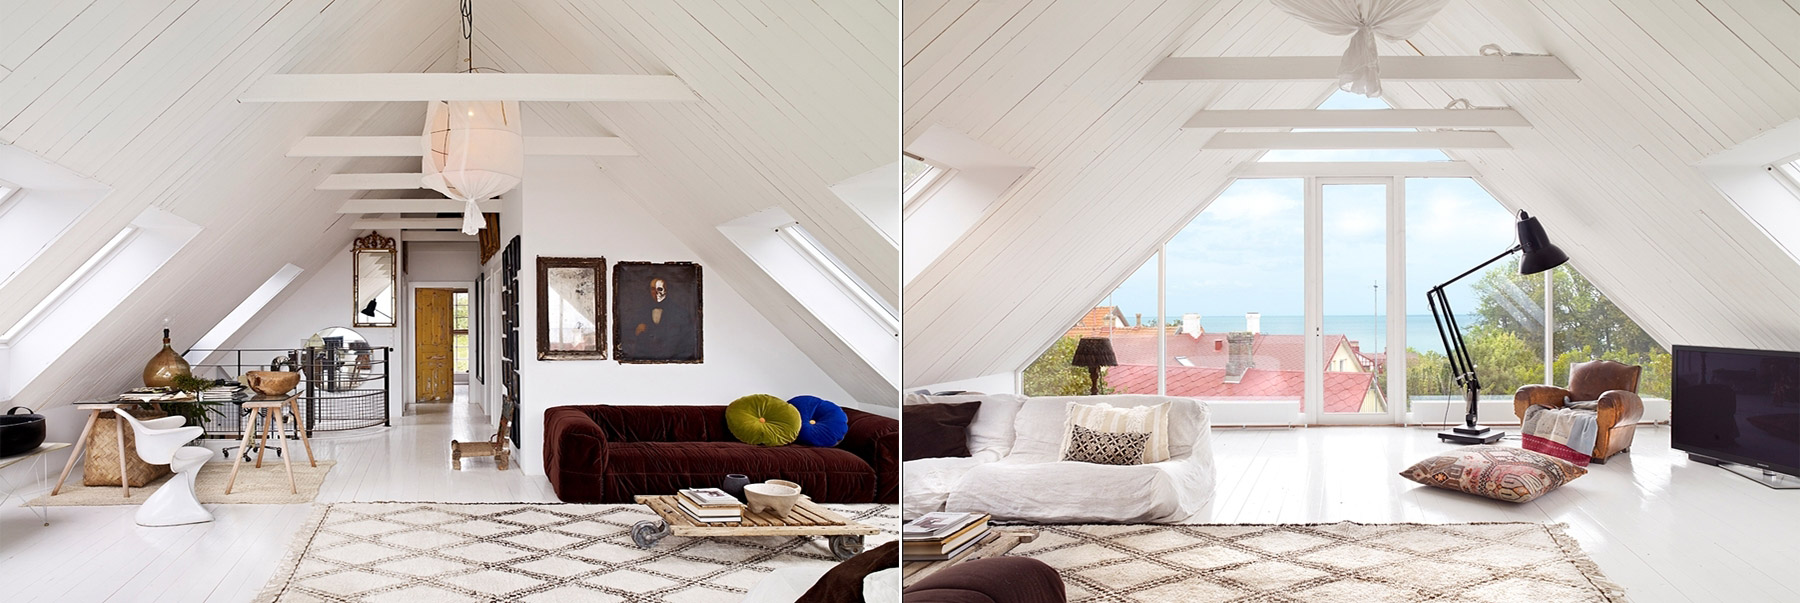 attic space room ideas - 30 Attic Living Room Ideas – Adorable Home